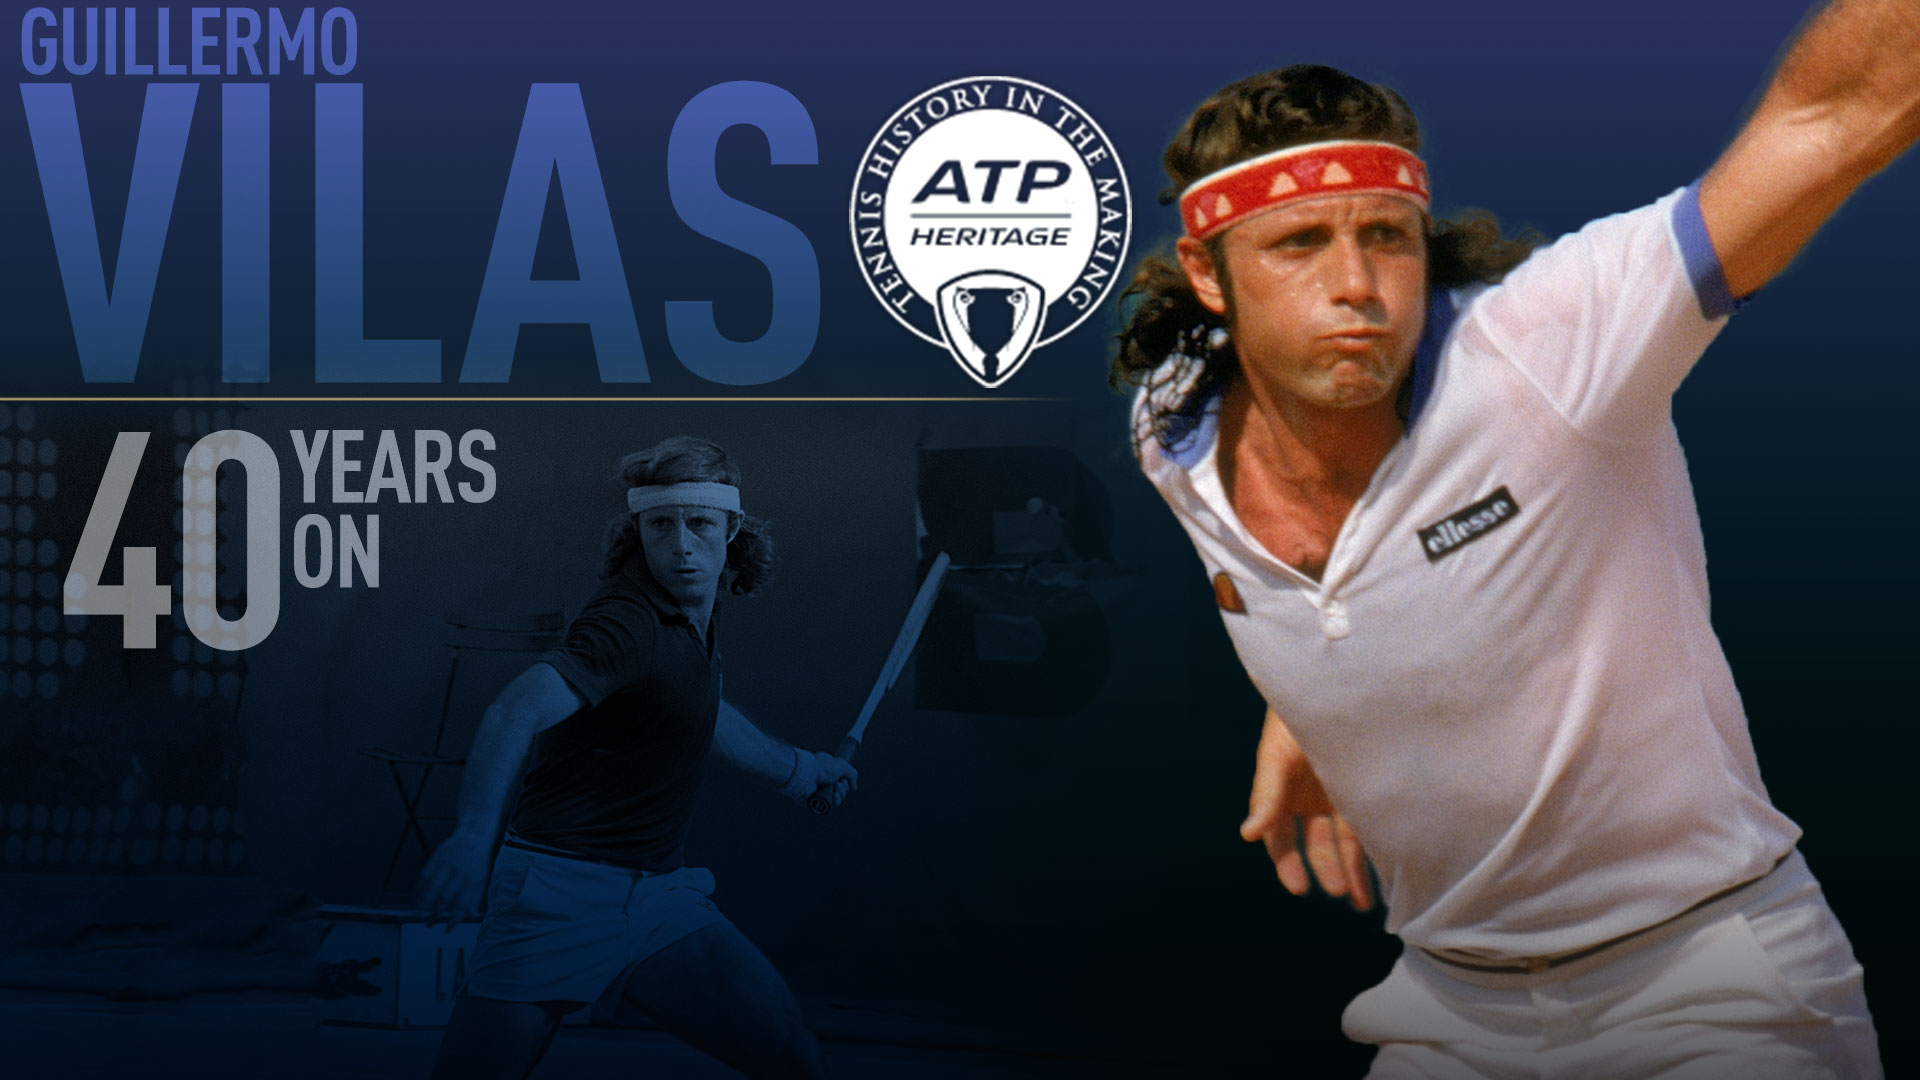 Guillermo Vilas Remembering 1977 US Open ATP World Tour